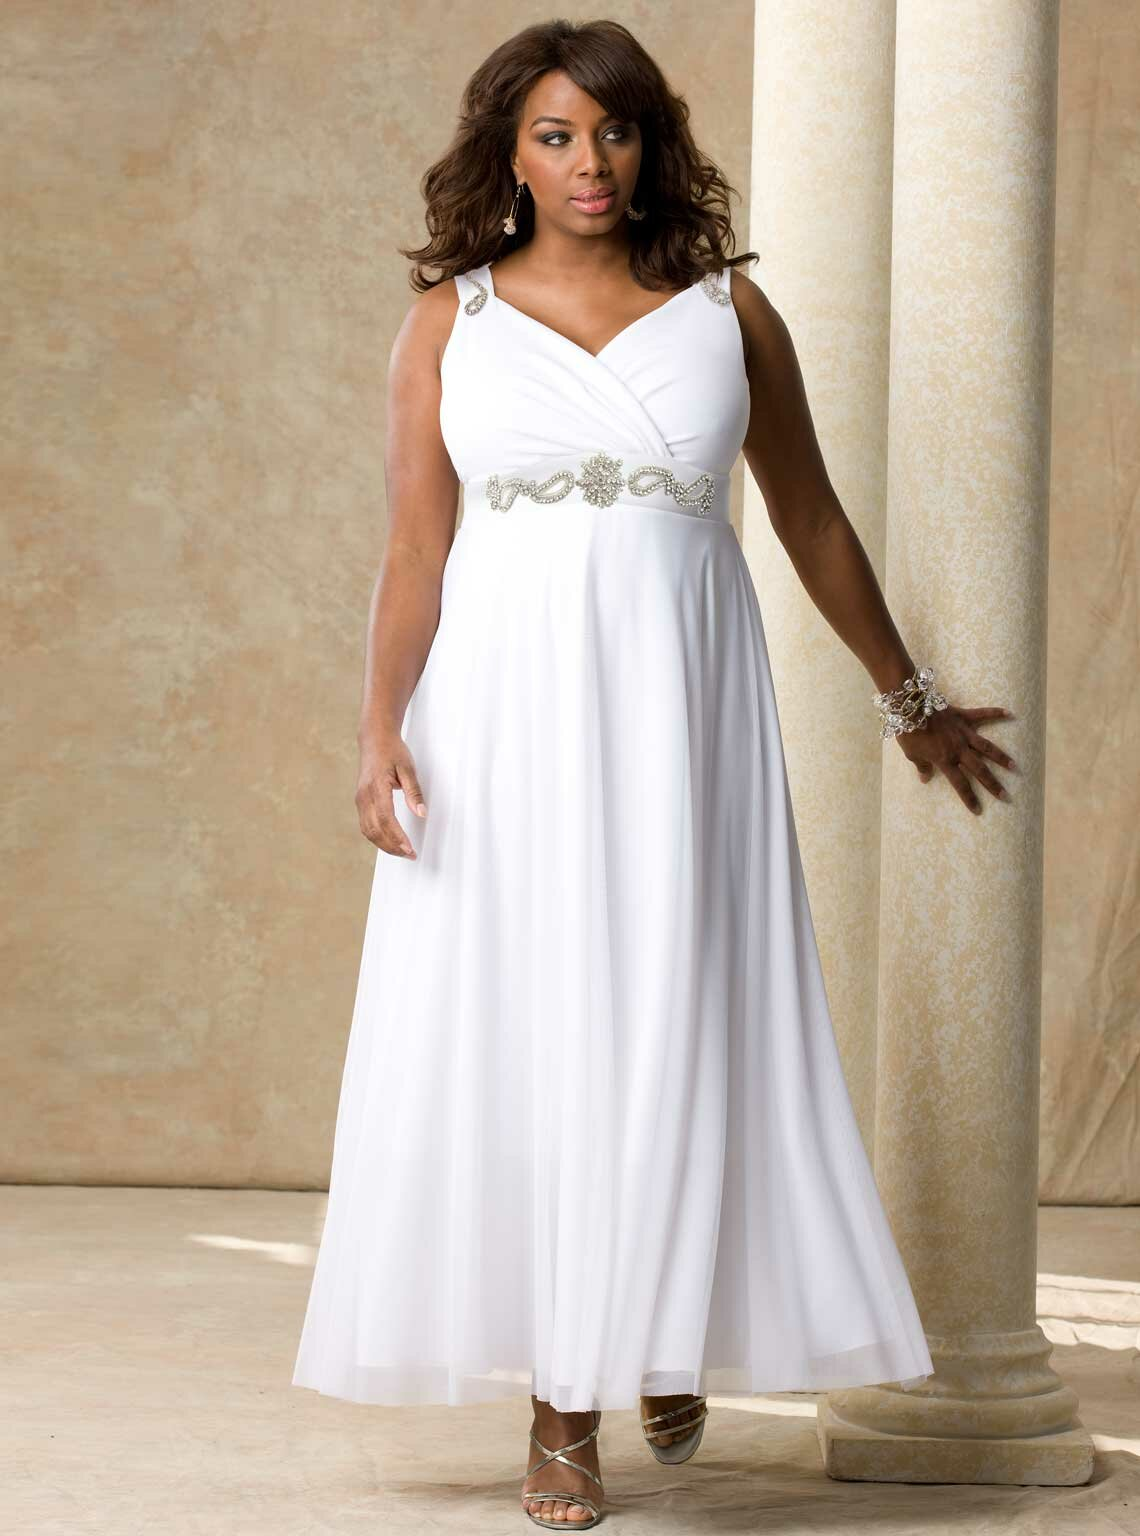 Summer wedding dresses Photo - 9